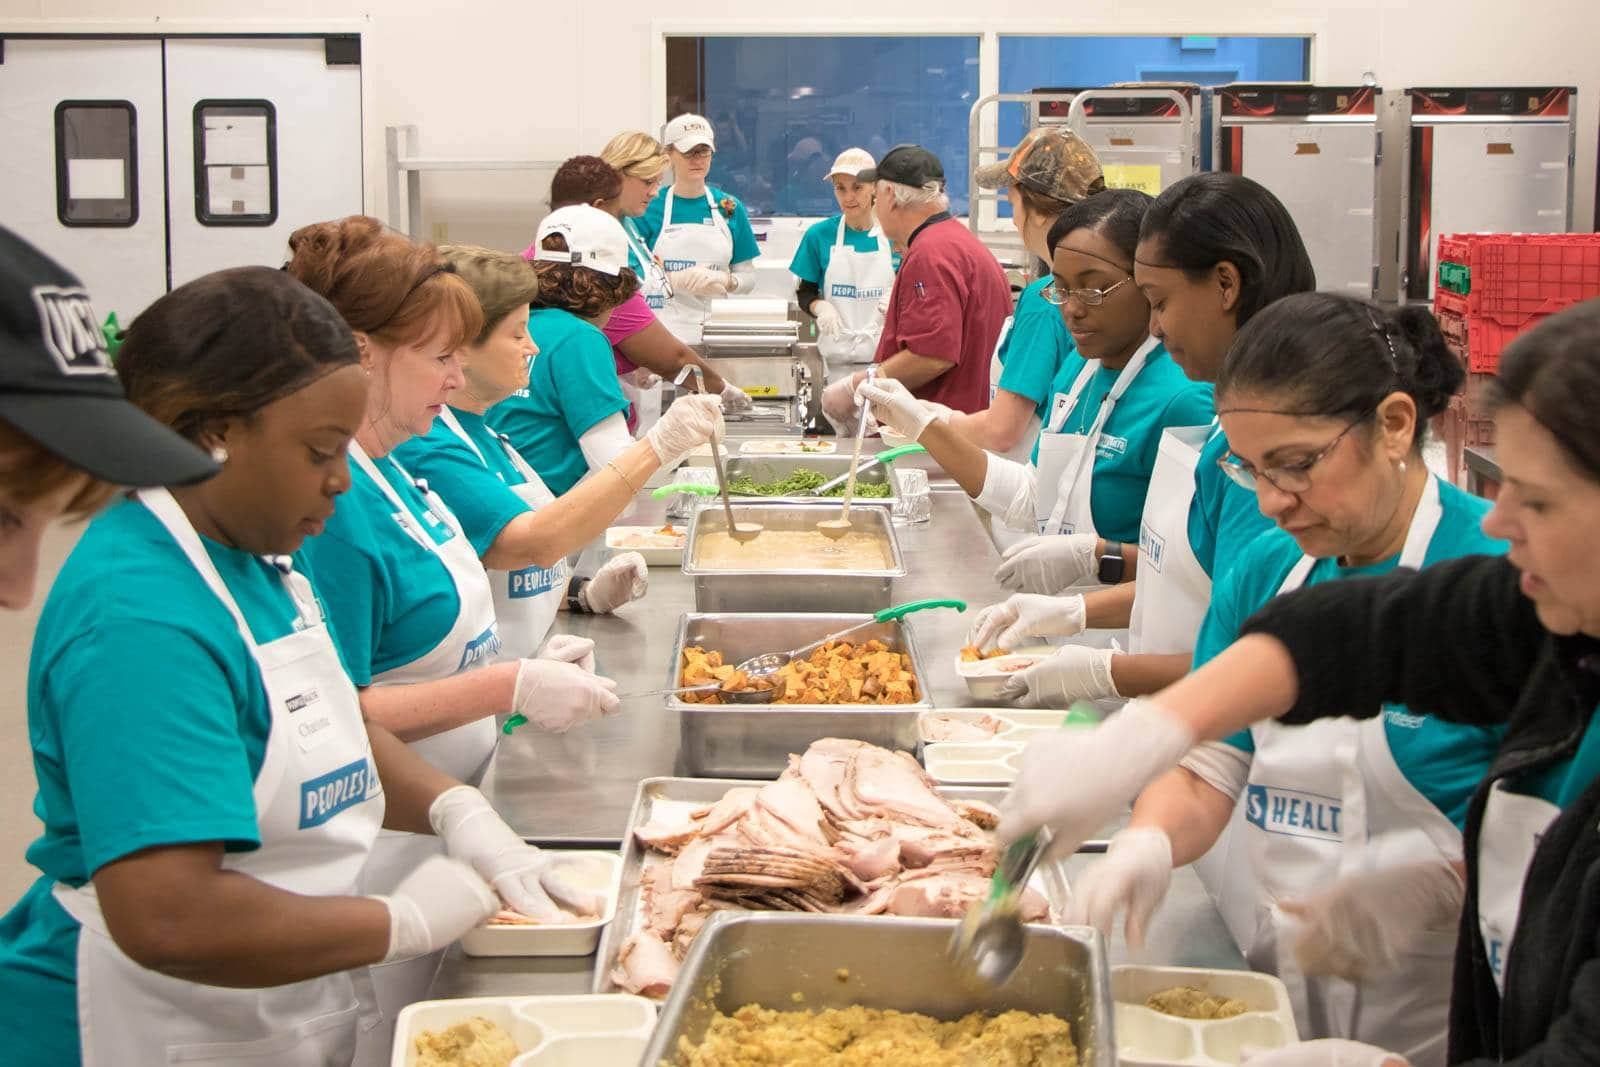 Peoples Health and Second Harvest Food Bank - Feeding South Louisiana prepared more than 890 Thanksgiving meals and 730 snack bags at the kitchen to distribute to local seniors during the holiday.